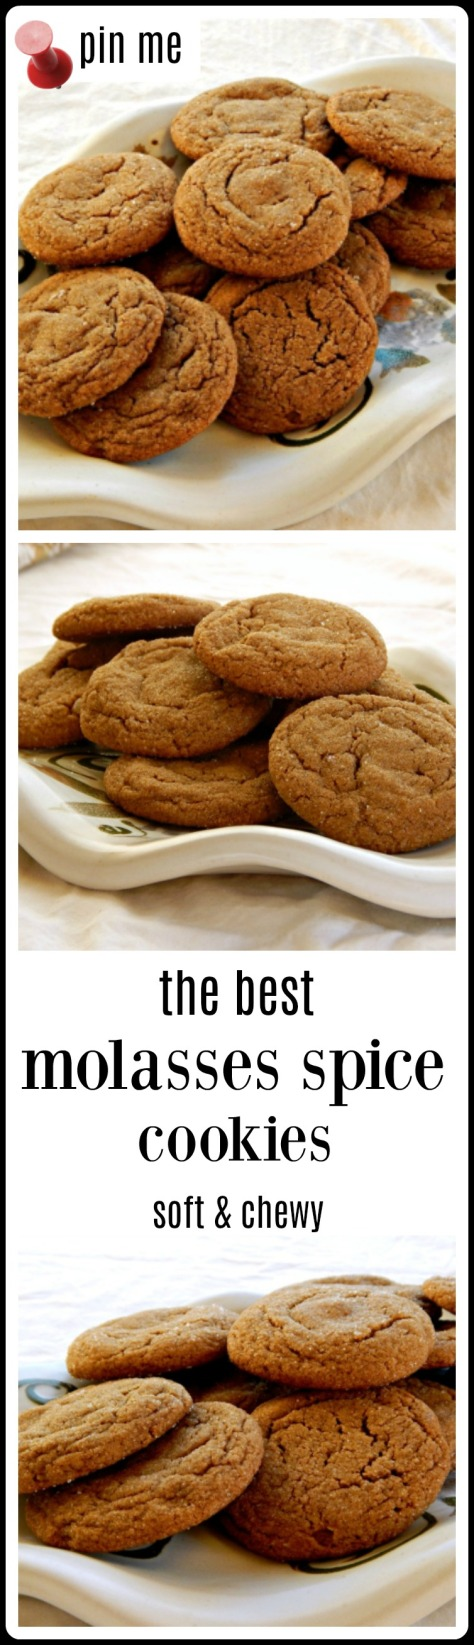 molasses spice cookies - these REALLY are the BEST! Addictive.